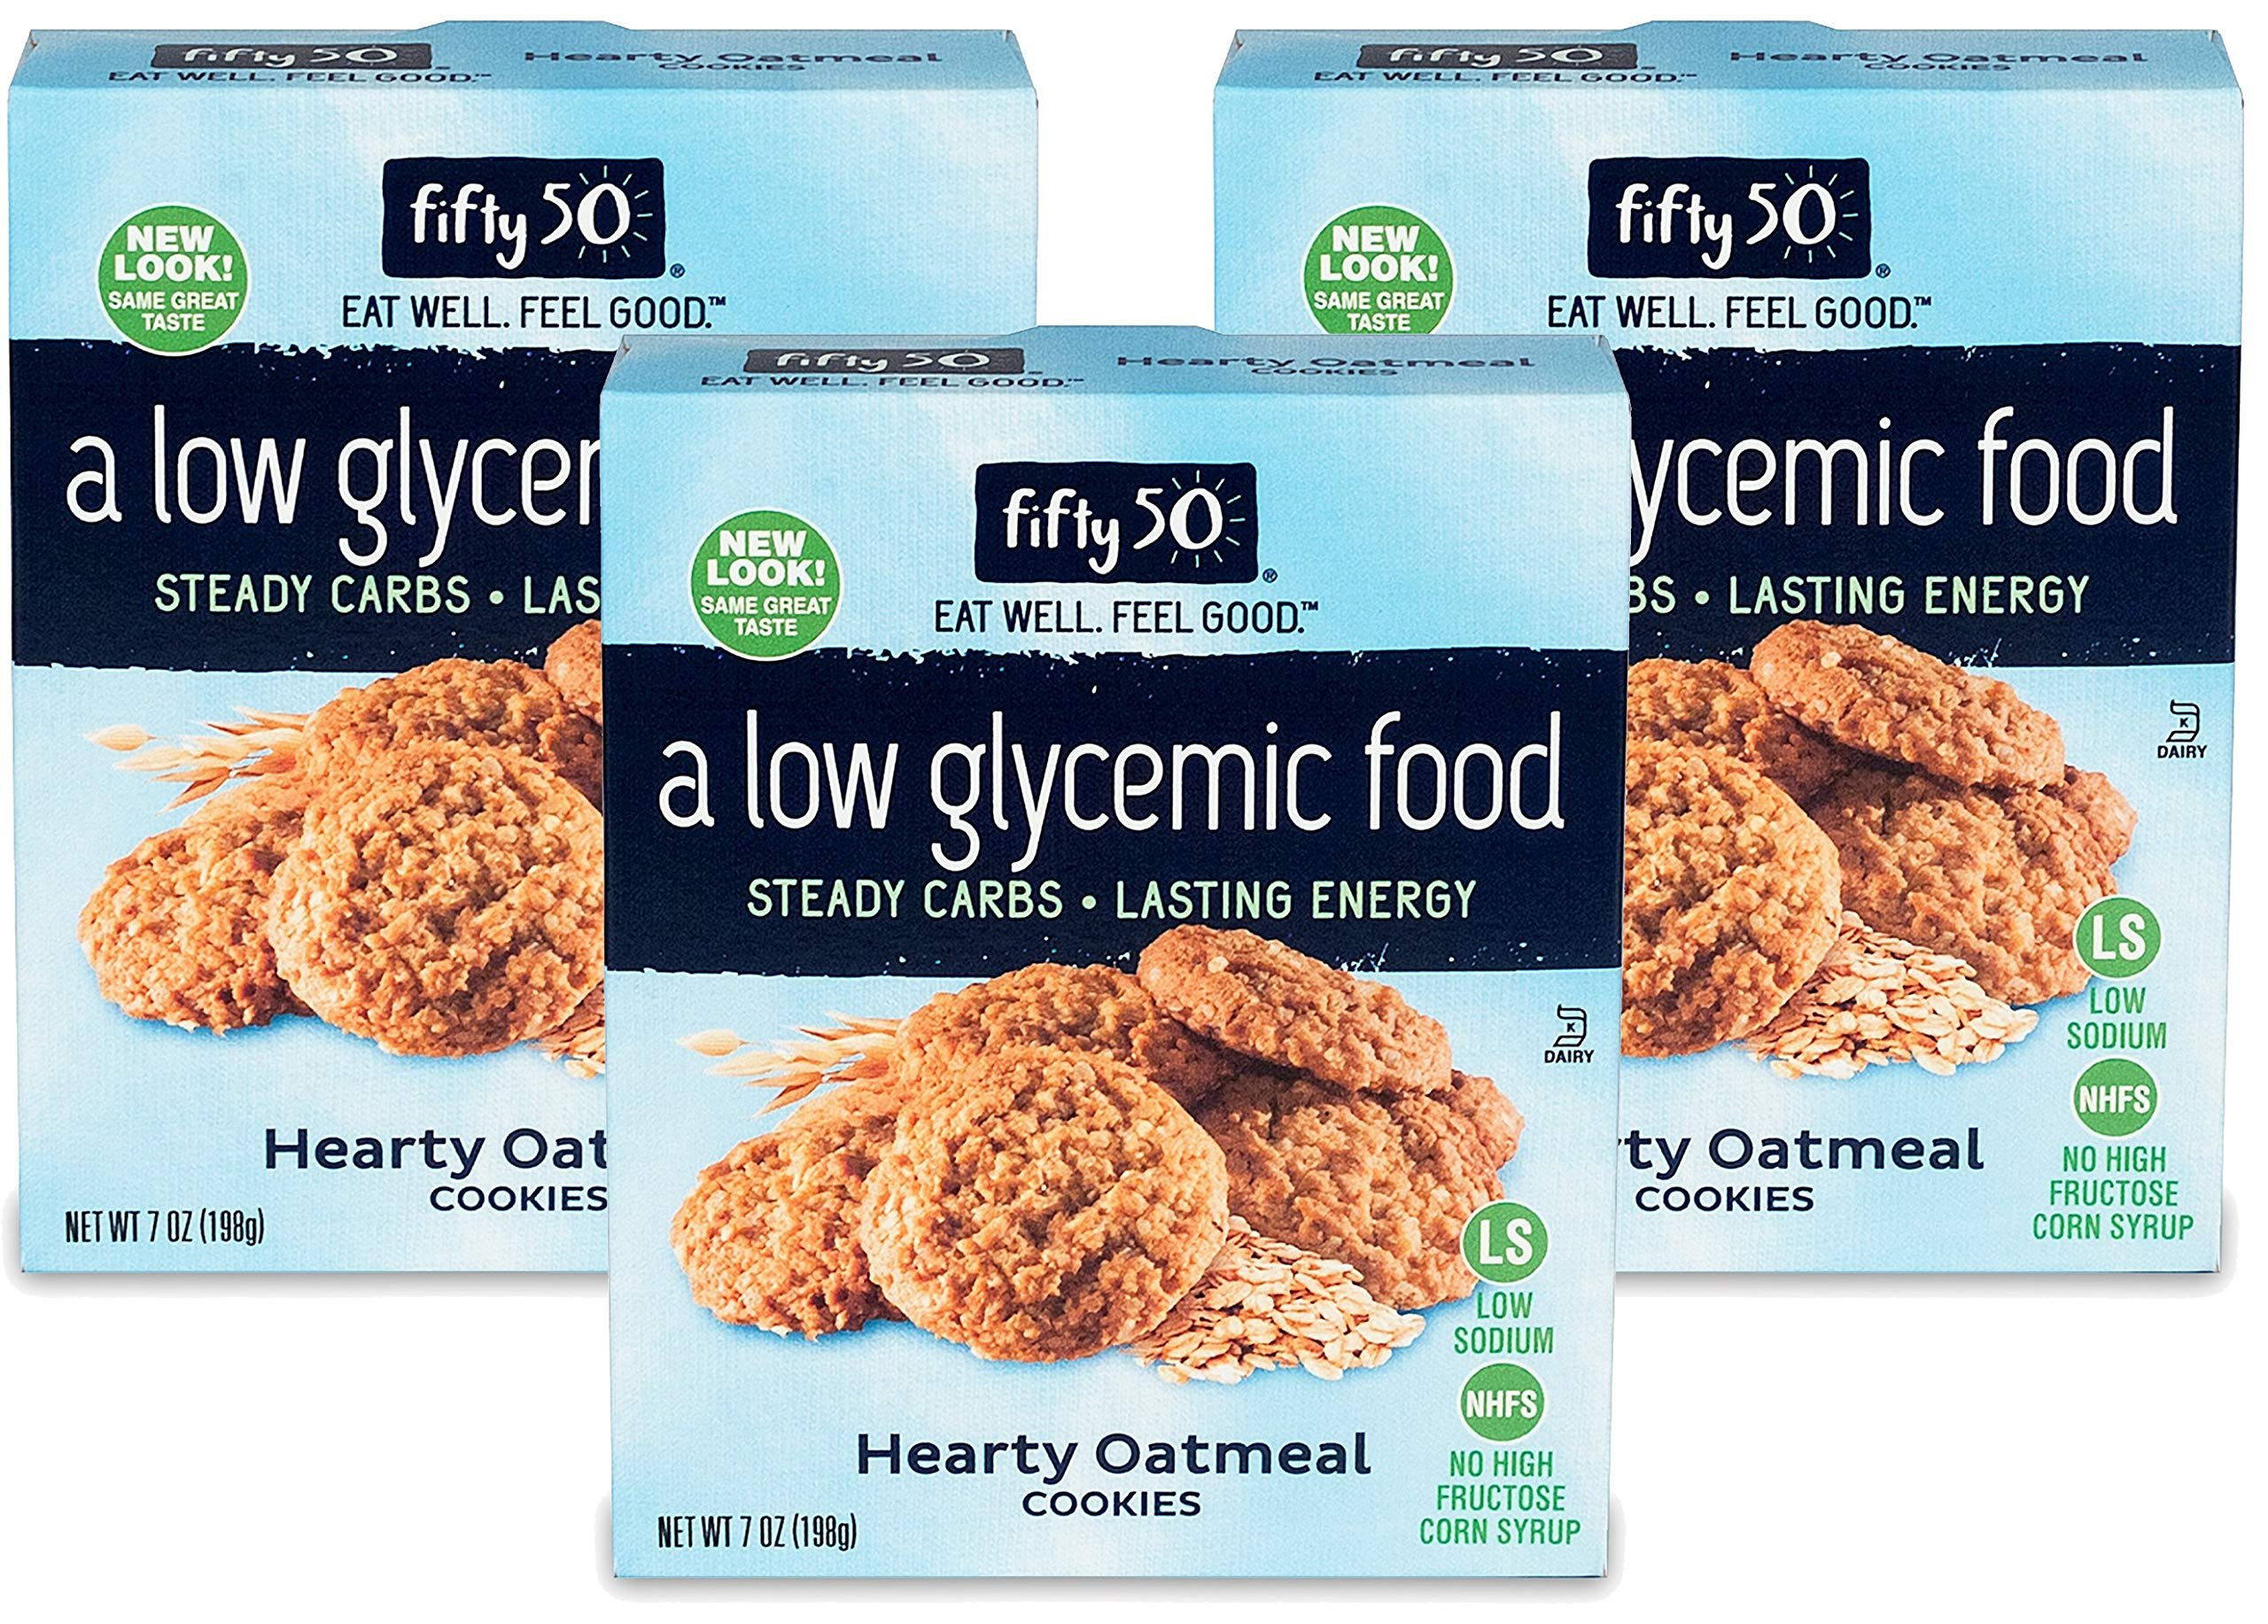 Fifty50 Foods Low Carb, Low Glycemic, Hearty Oatmeal Cookies with No High Fructose Corn Syrup, 7 Ounce (Pack of 3) by FIFTY 50